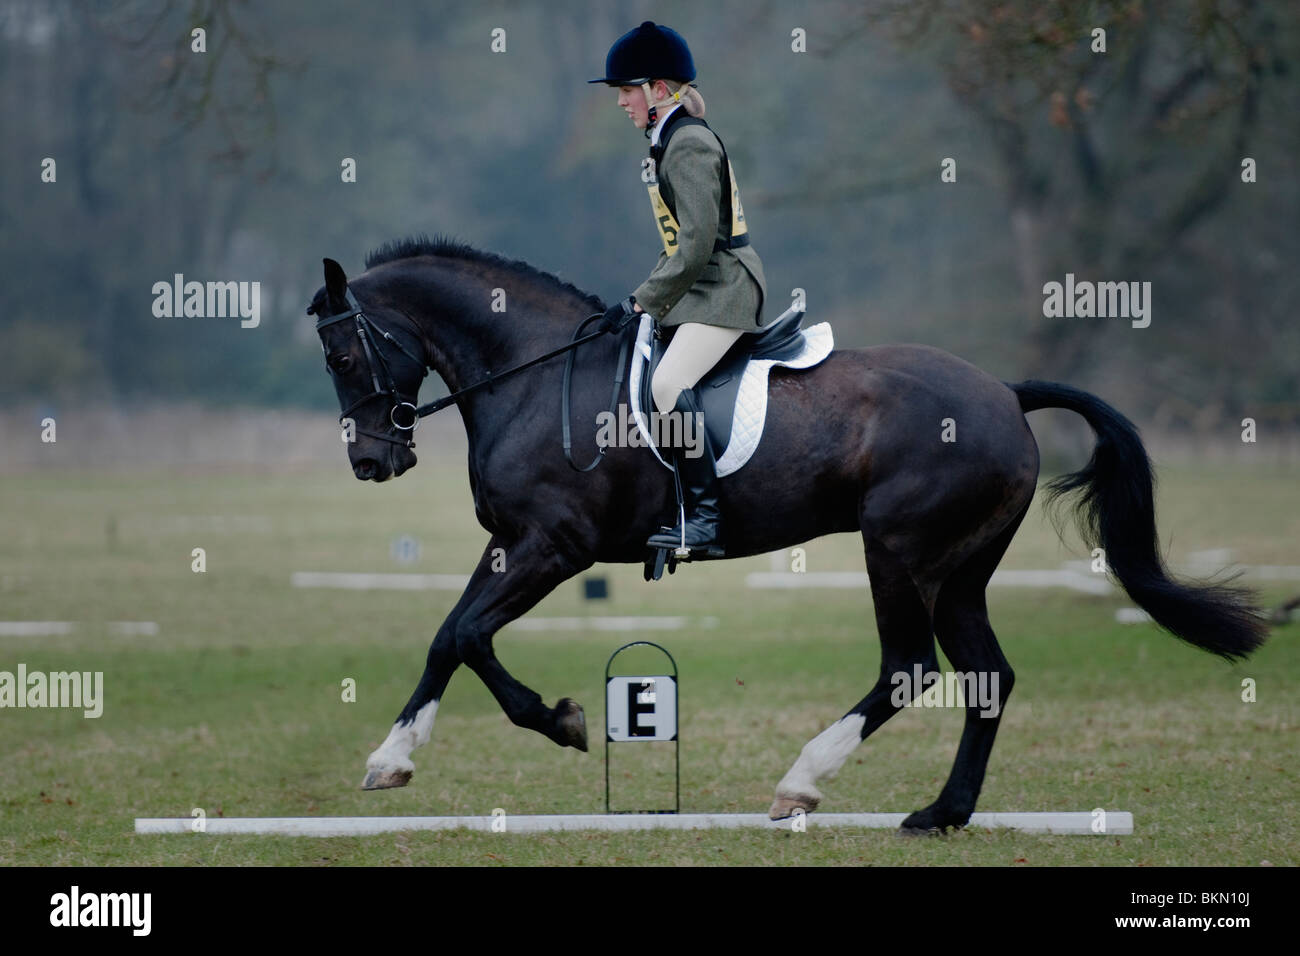 A participant at the  Central Scotland Horse Trials, Scone Palace, Perth. April 24th 2010. - Stock Image